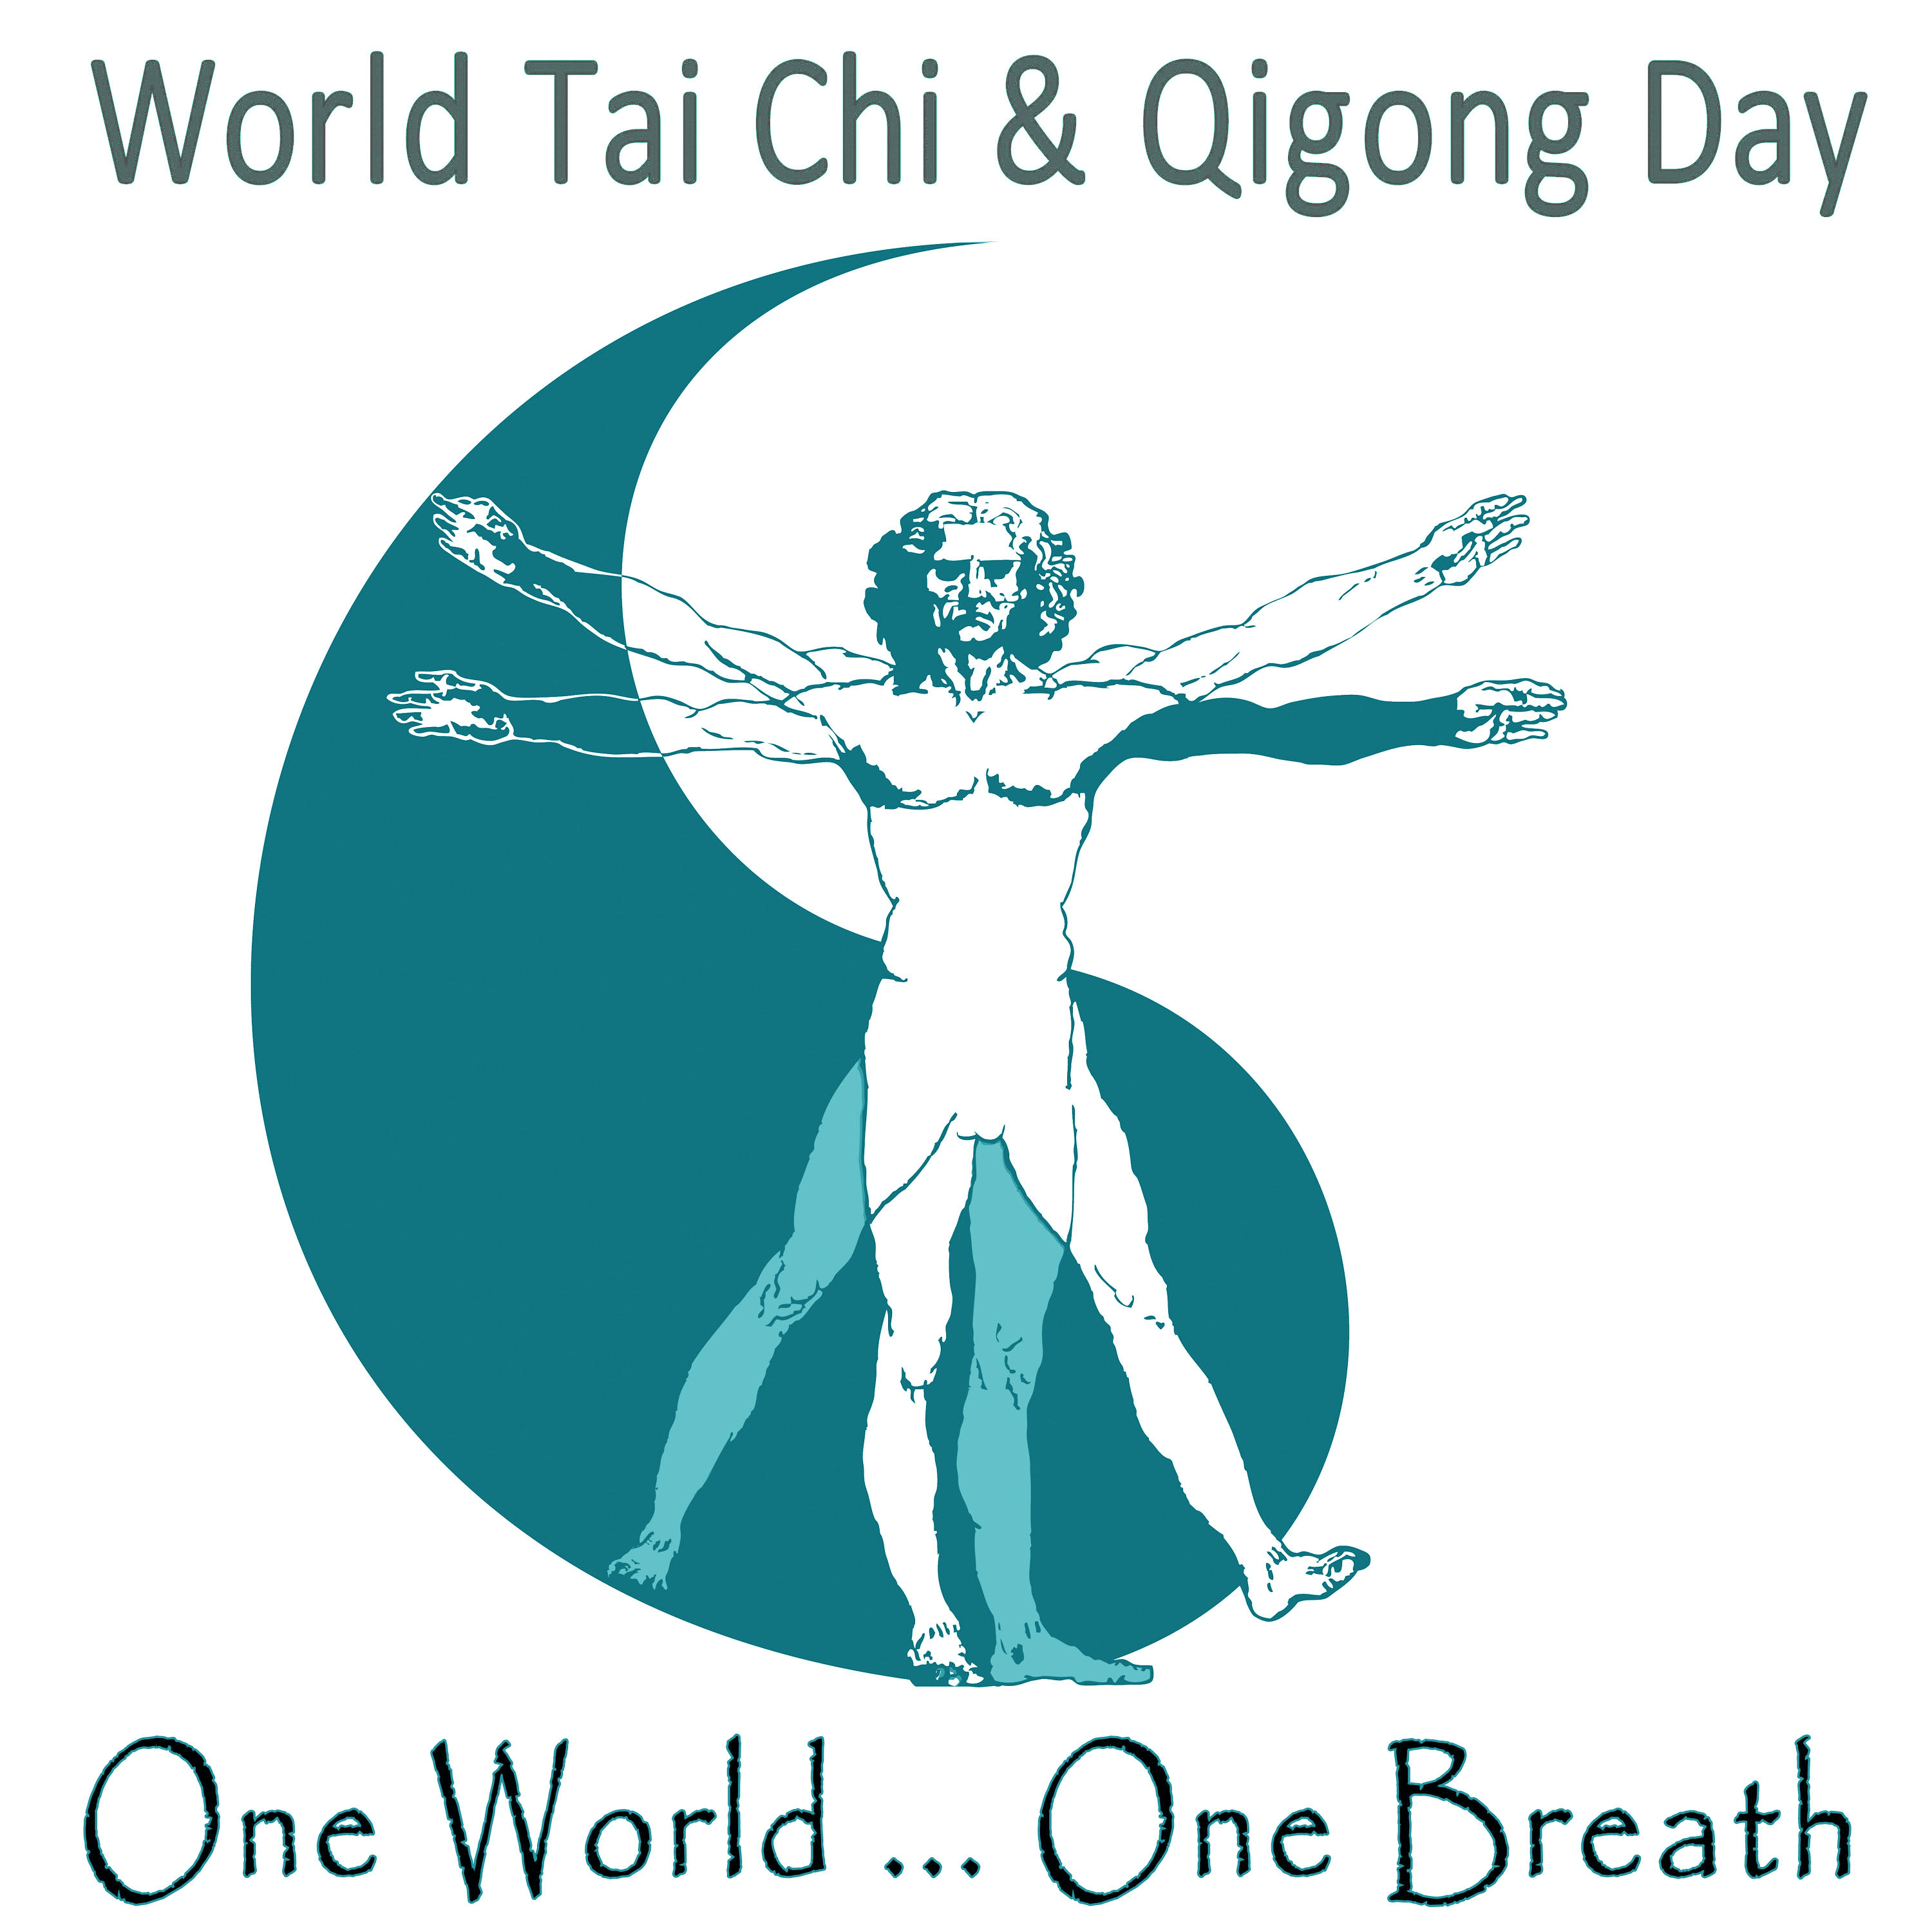 World Tai Chi & Qigong Day - A global health education event bringing the entire planet together last Saturday of April each year with mass teach-ins & exhibitions-over 80 nations.